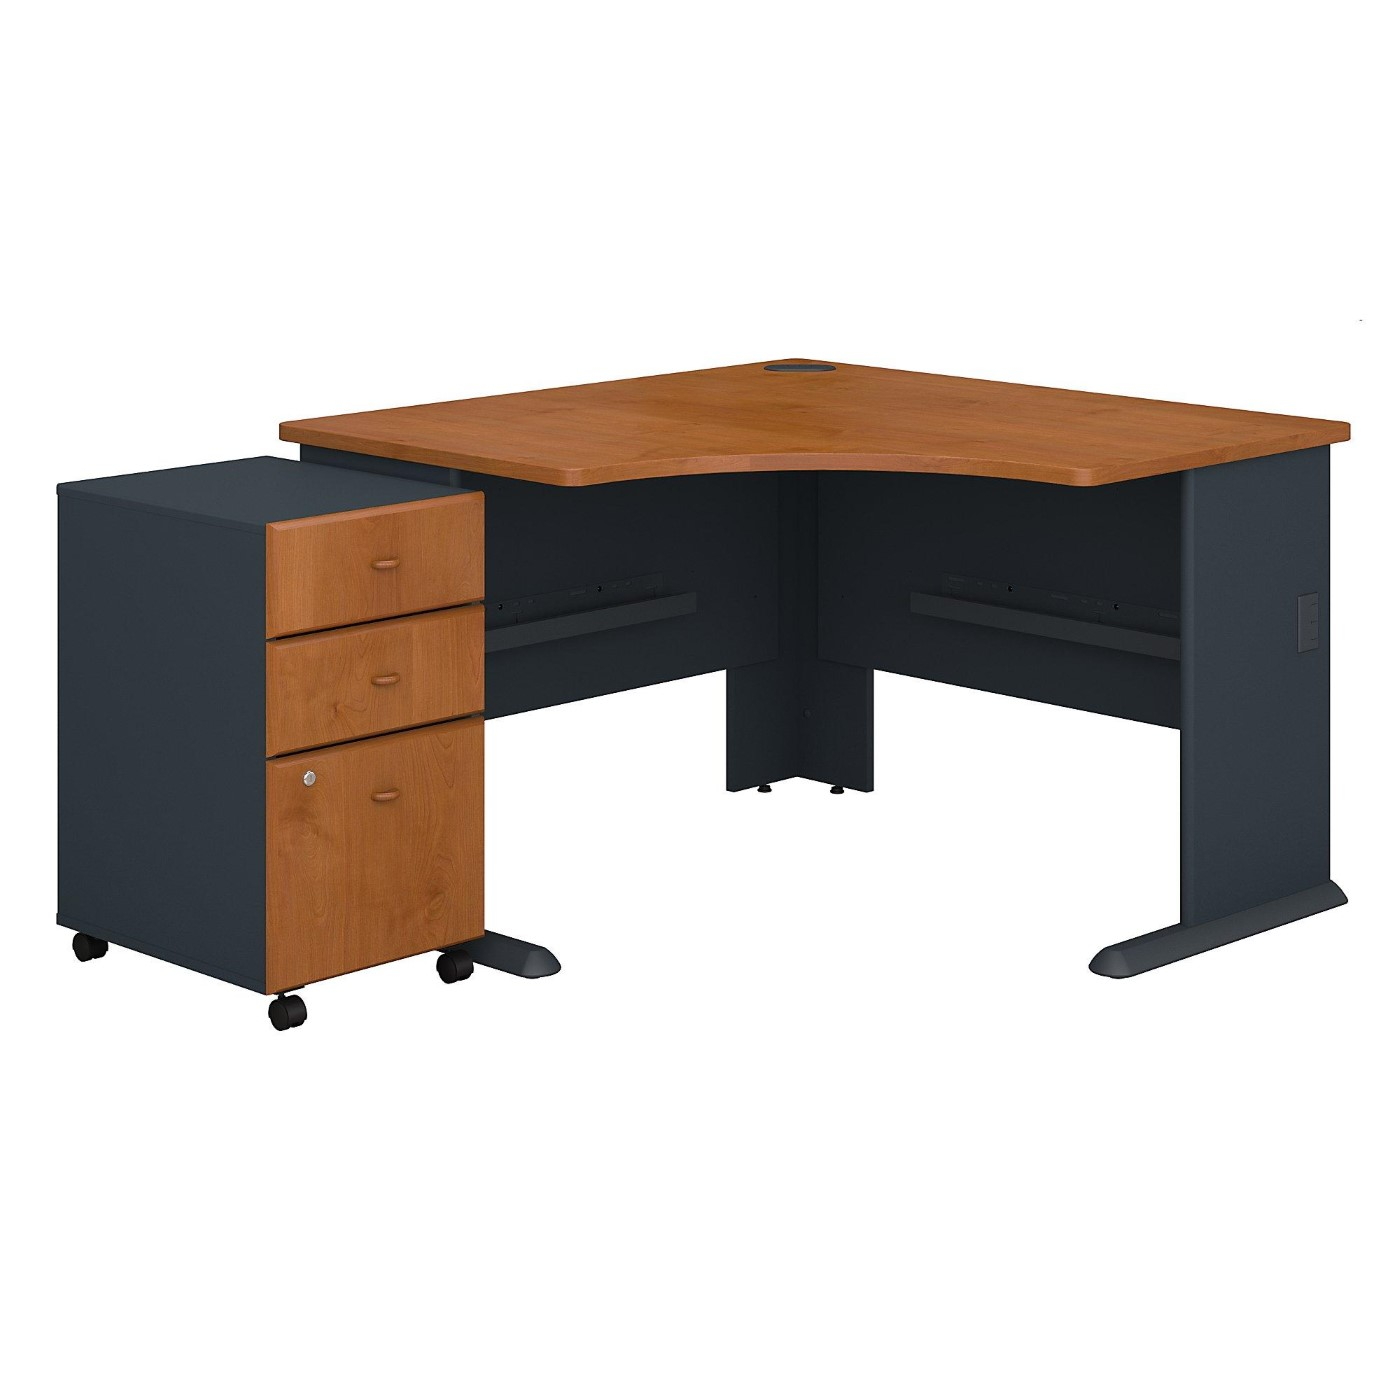 BUSH BUSINESS FURNITURE SERIES A 48W CORNER DESK WITH MOBILE FILE CABINET. FREE SHIPPING.